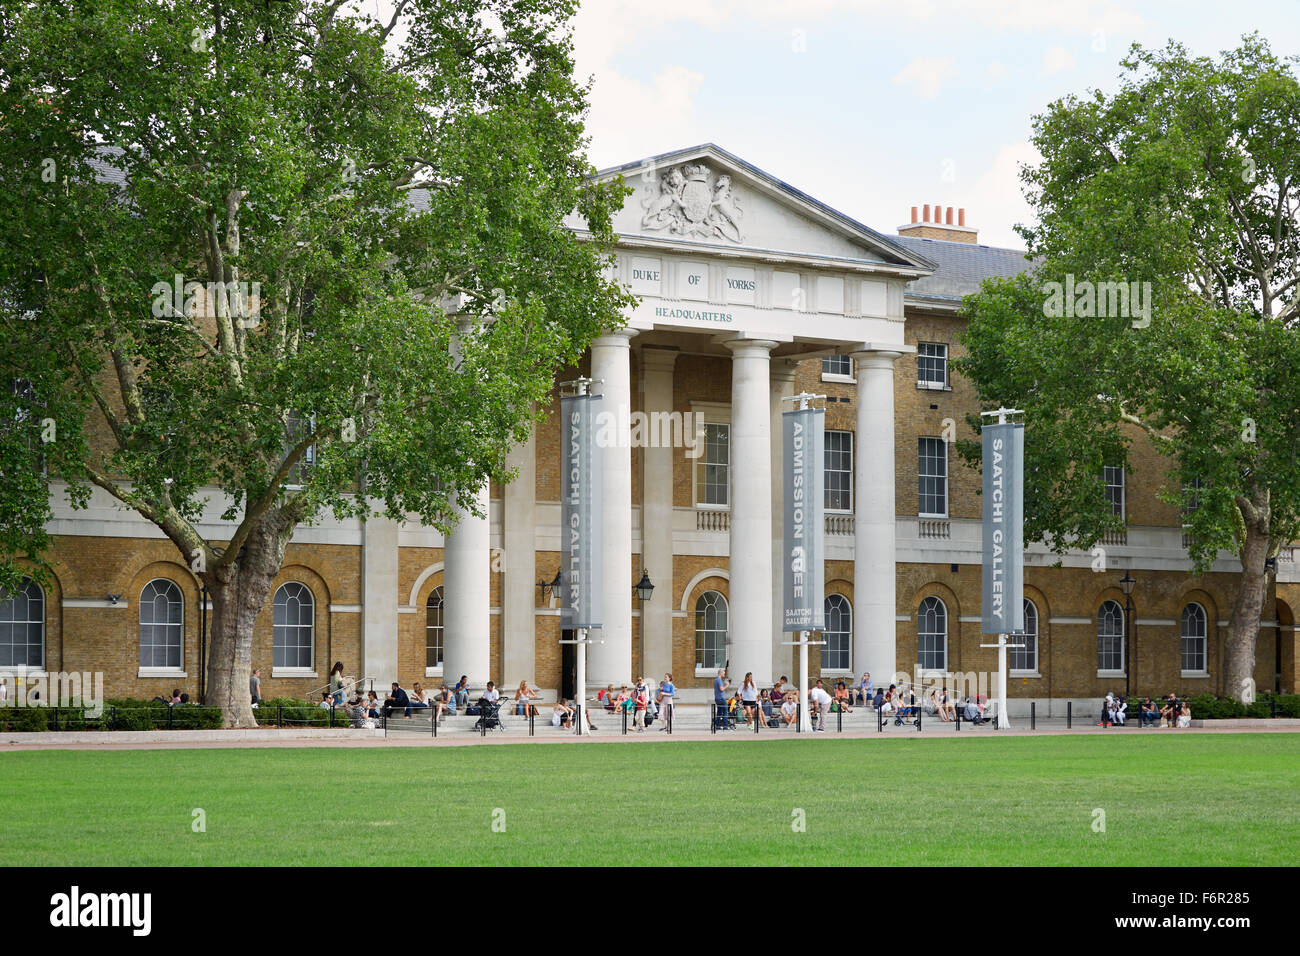 The Saatchi Gallery, famous art gallery in London - Stock Image